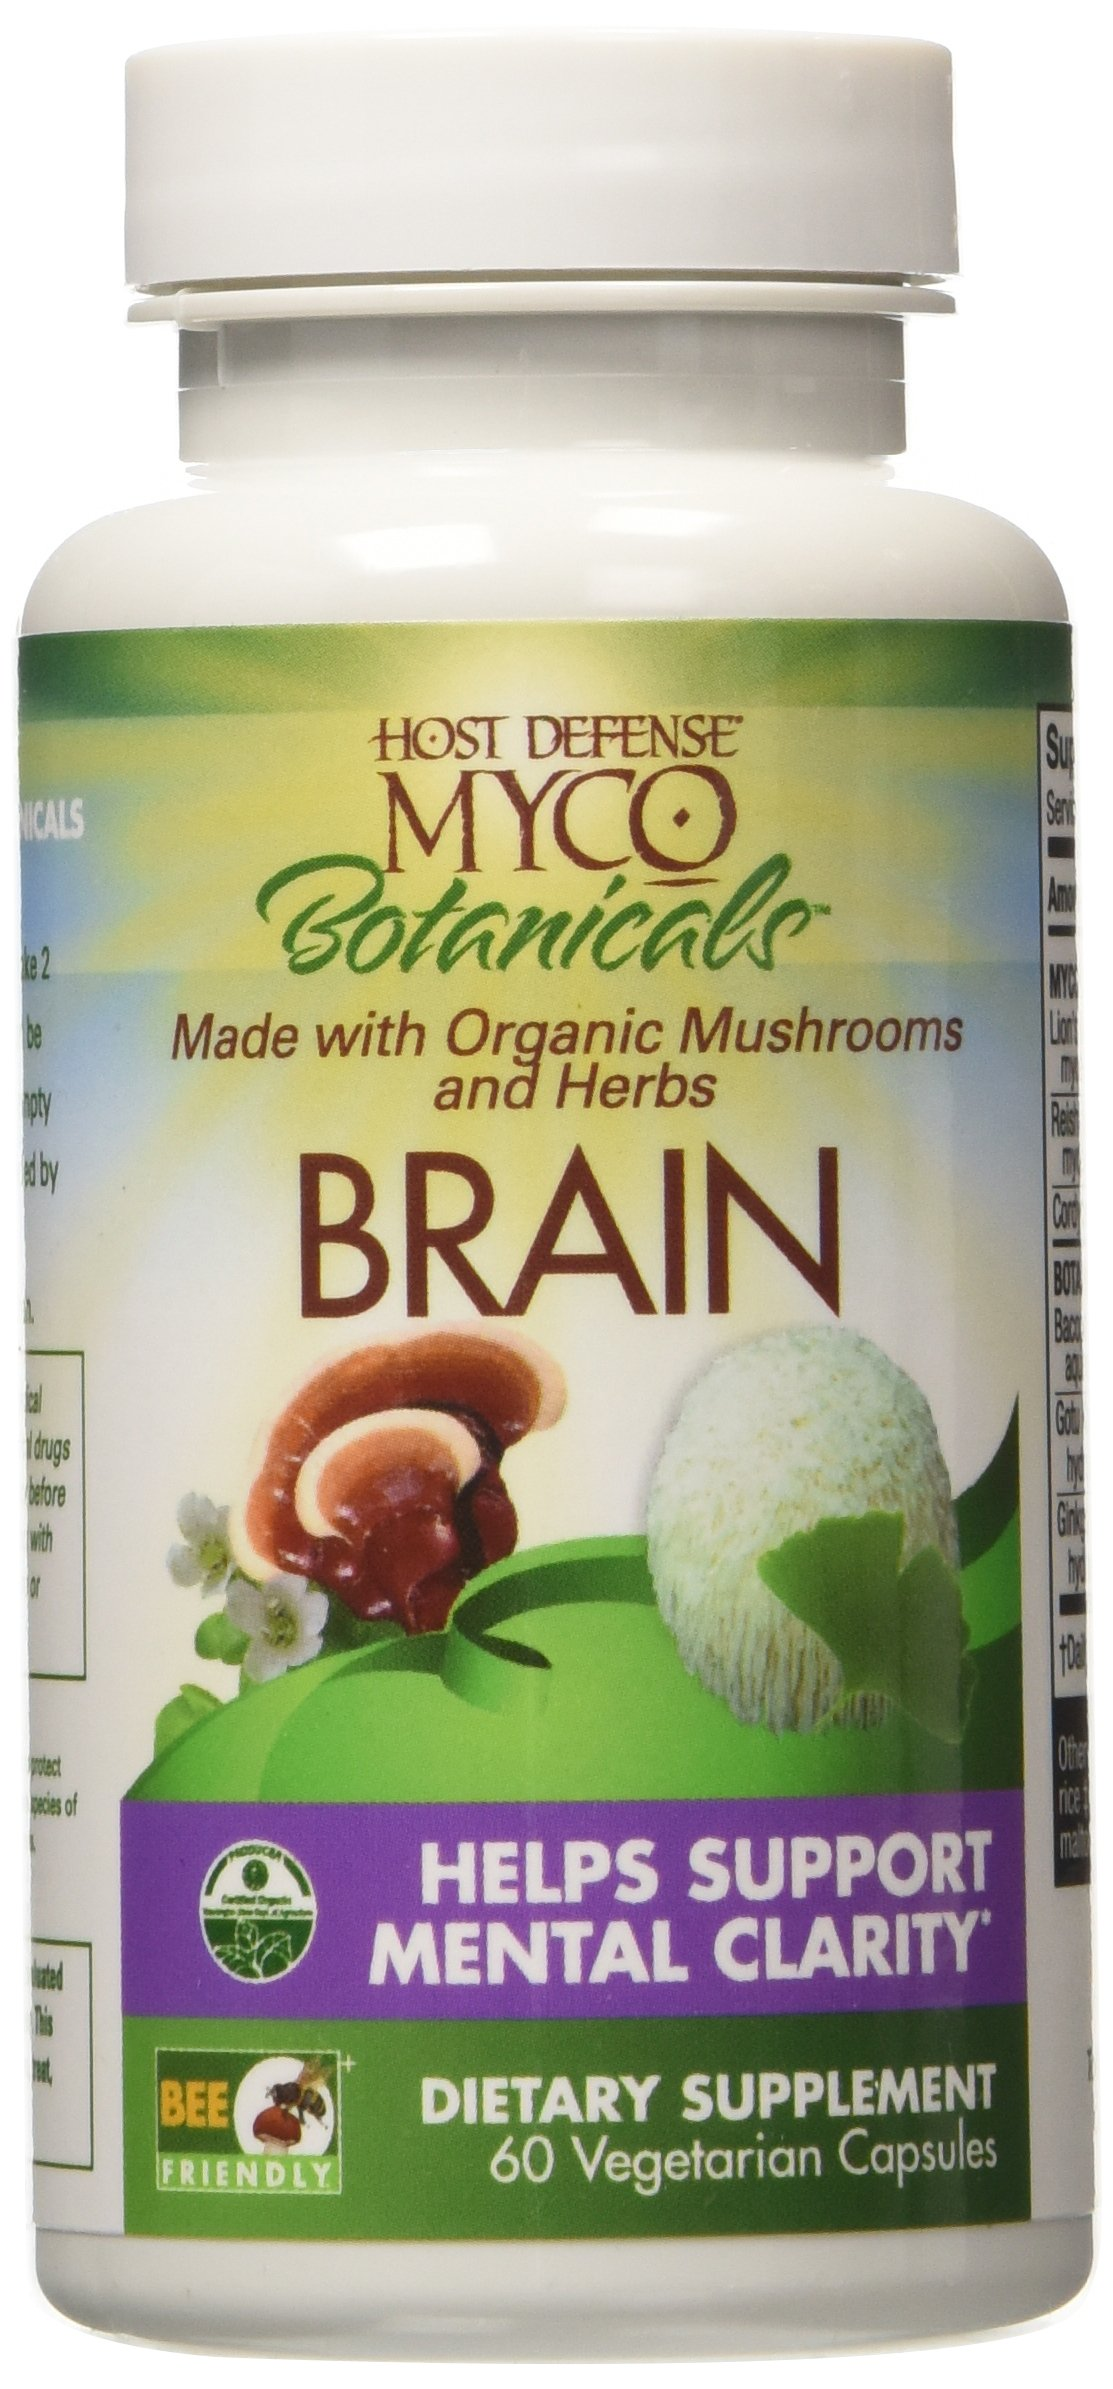 Host Defense - MycoBotanicals Brain, Mushroom and Herb Support for Mental Clarity, 60 Count (FFP)